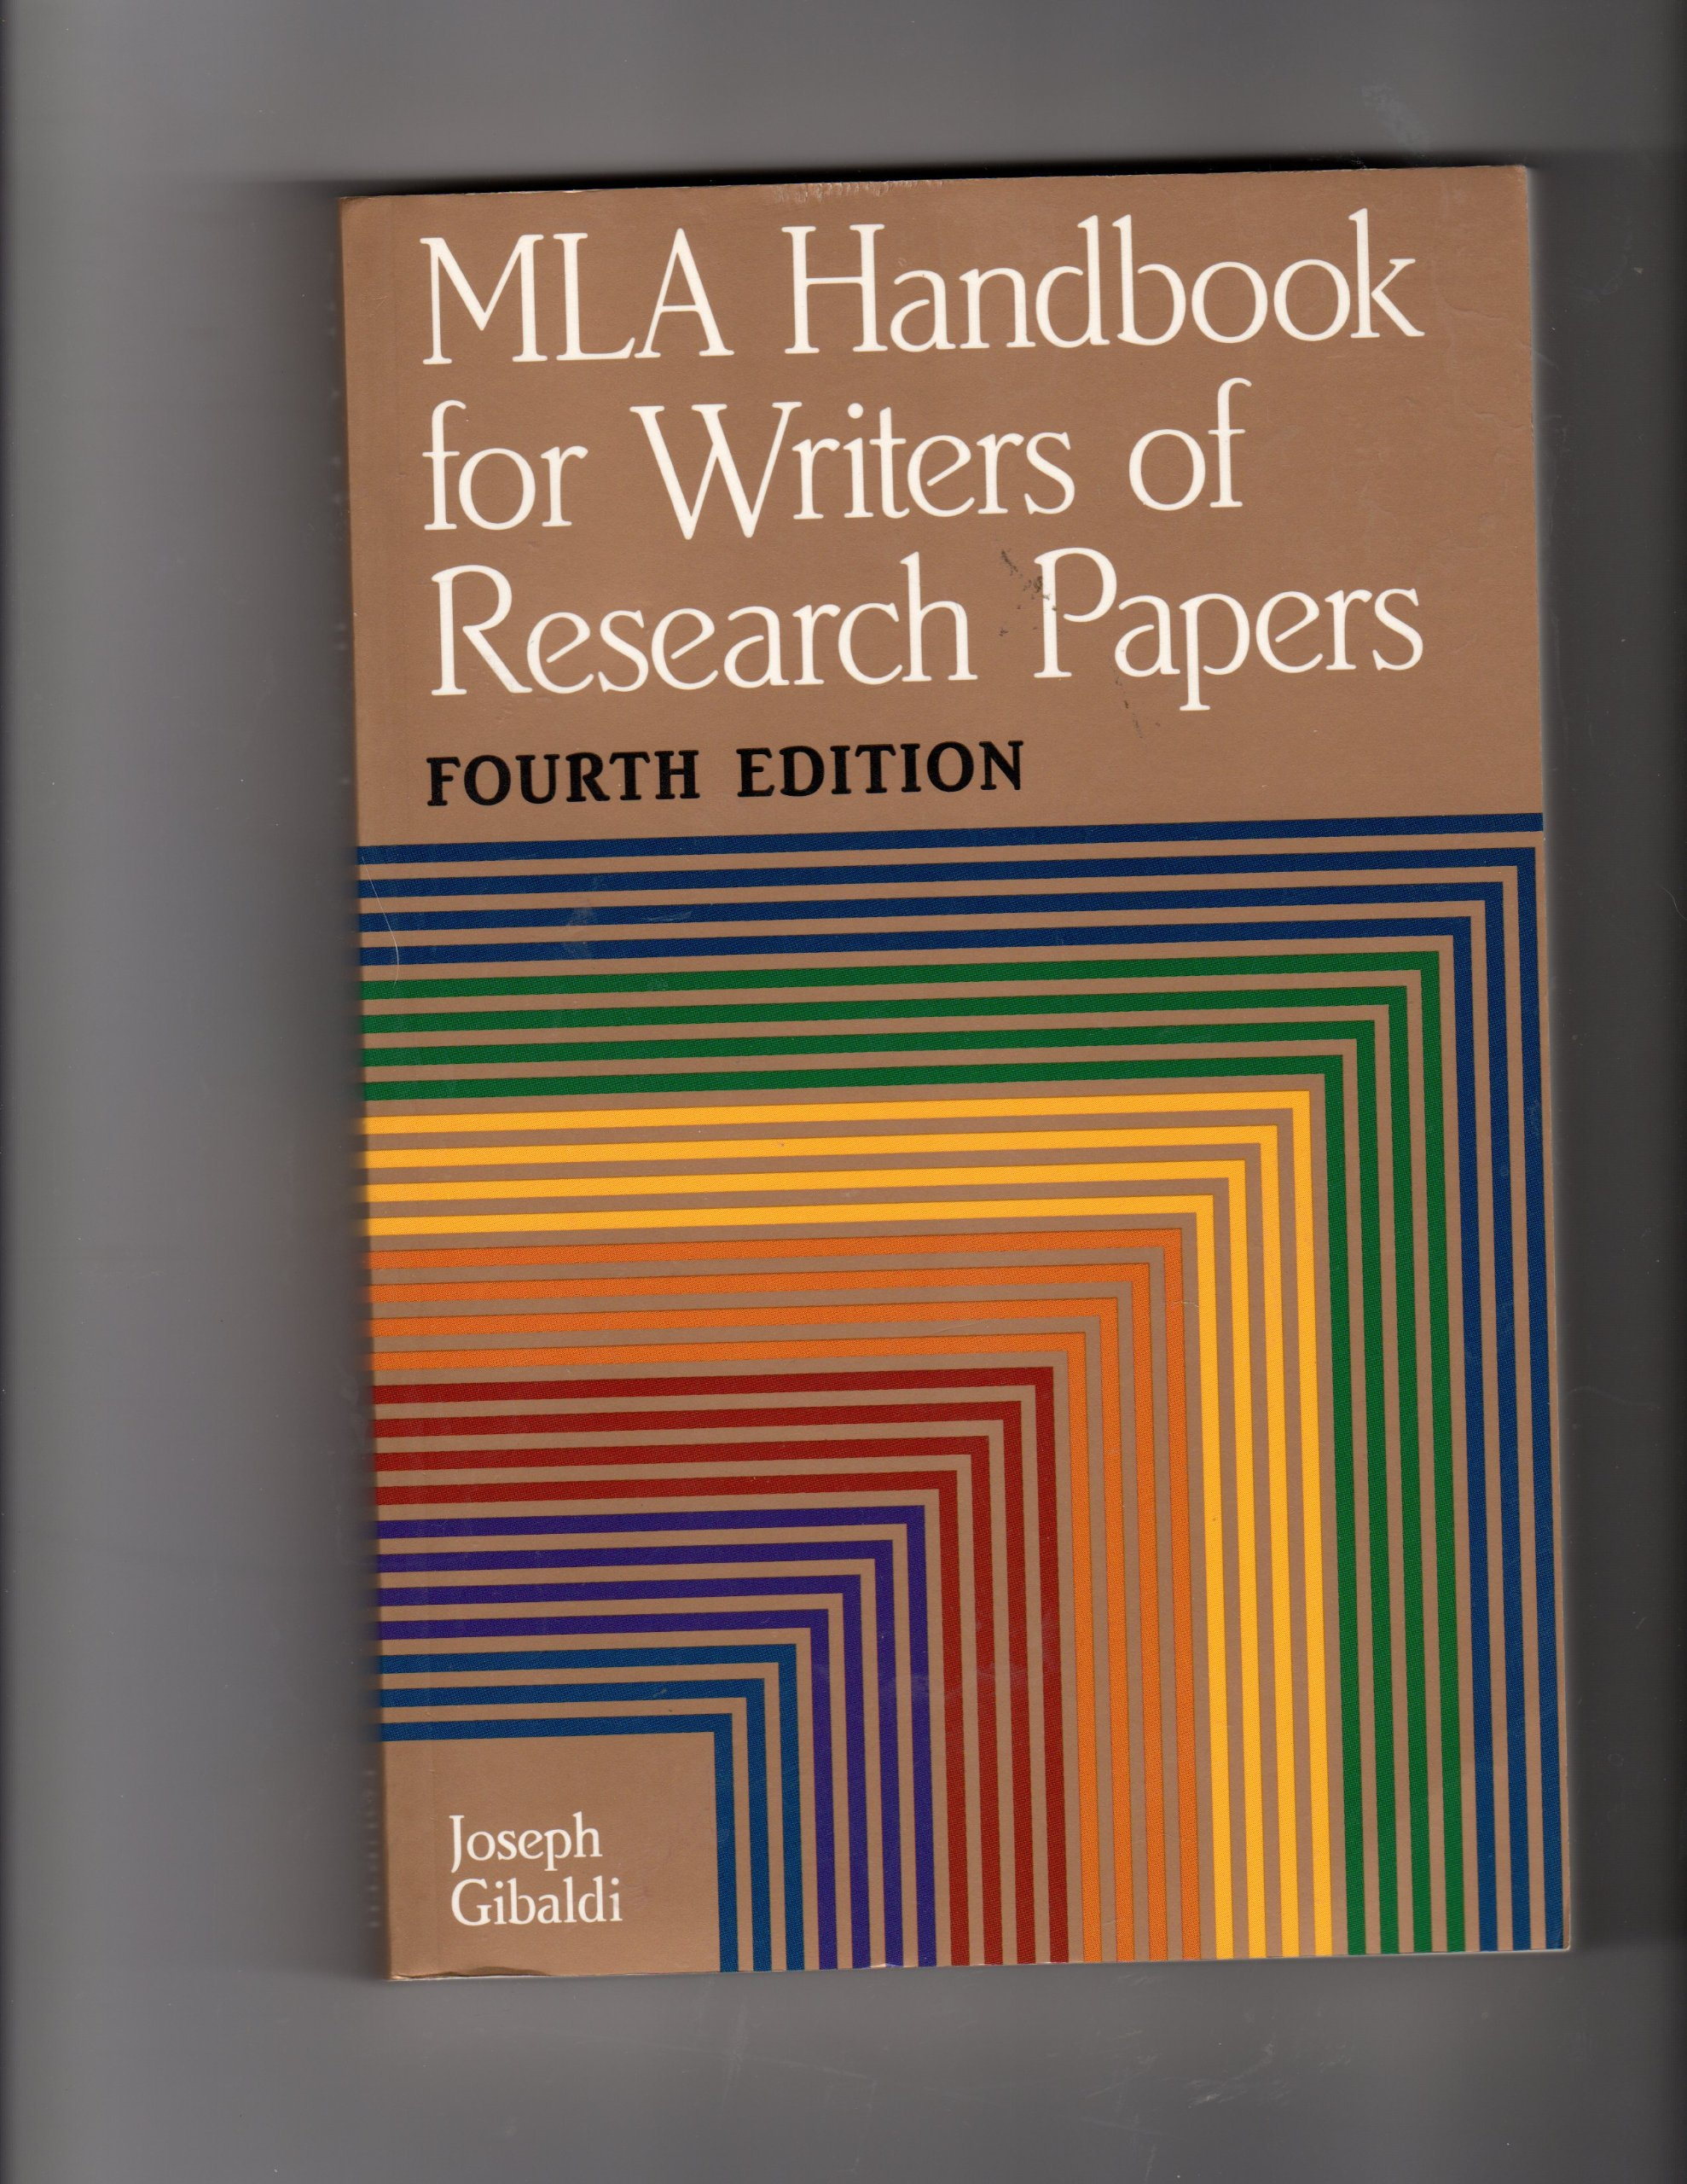 mla handbook pdf free download